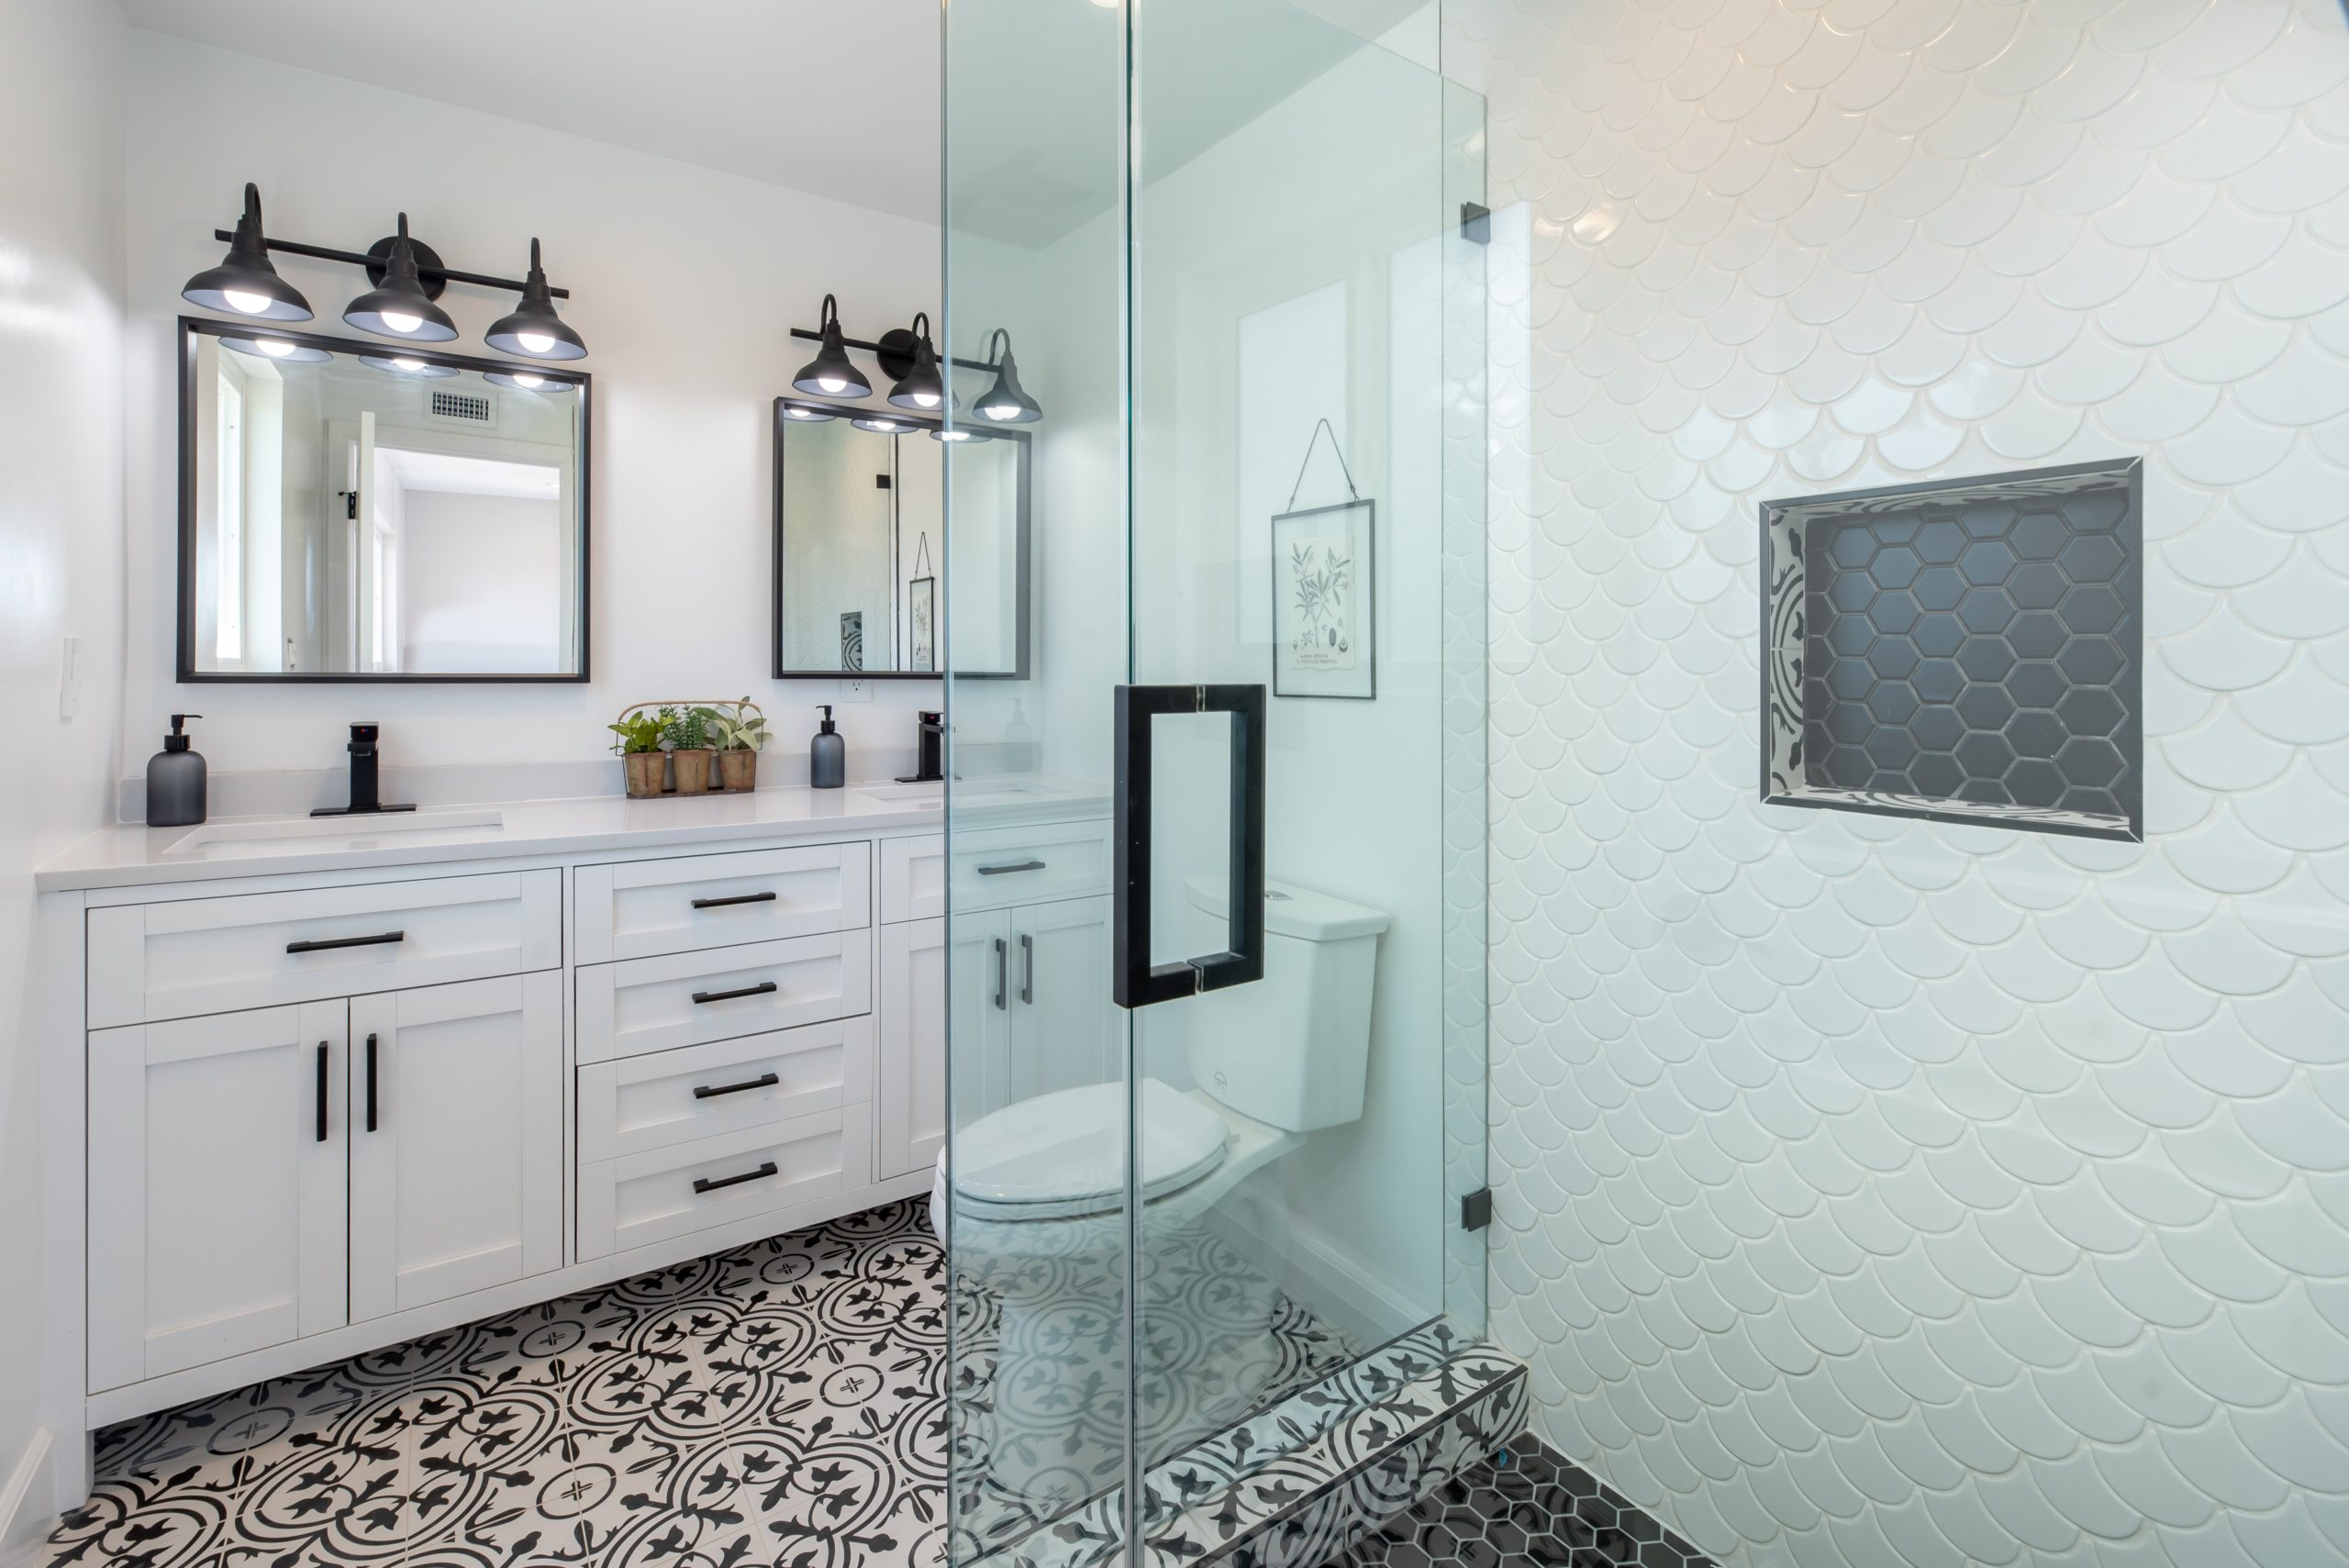 Modern Bathroom Remodel Design Guide: Everything You Need to Know